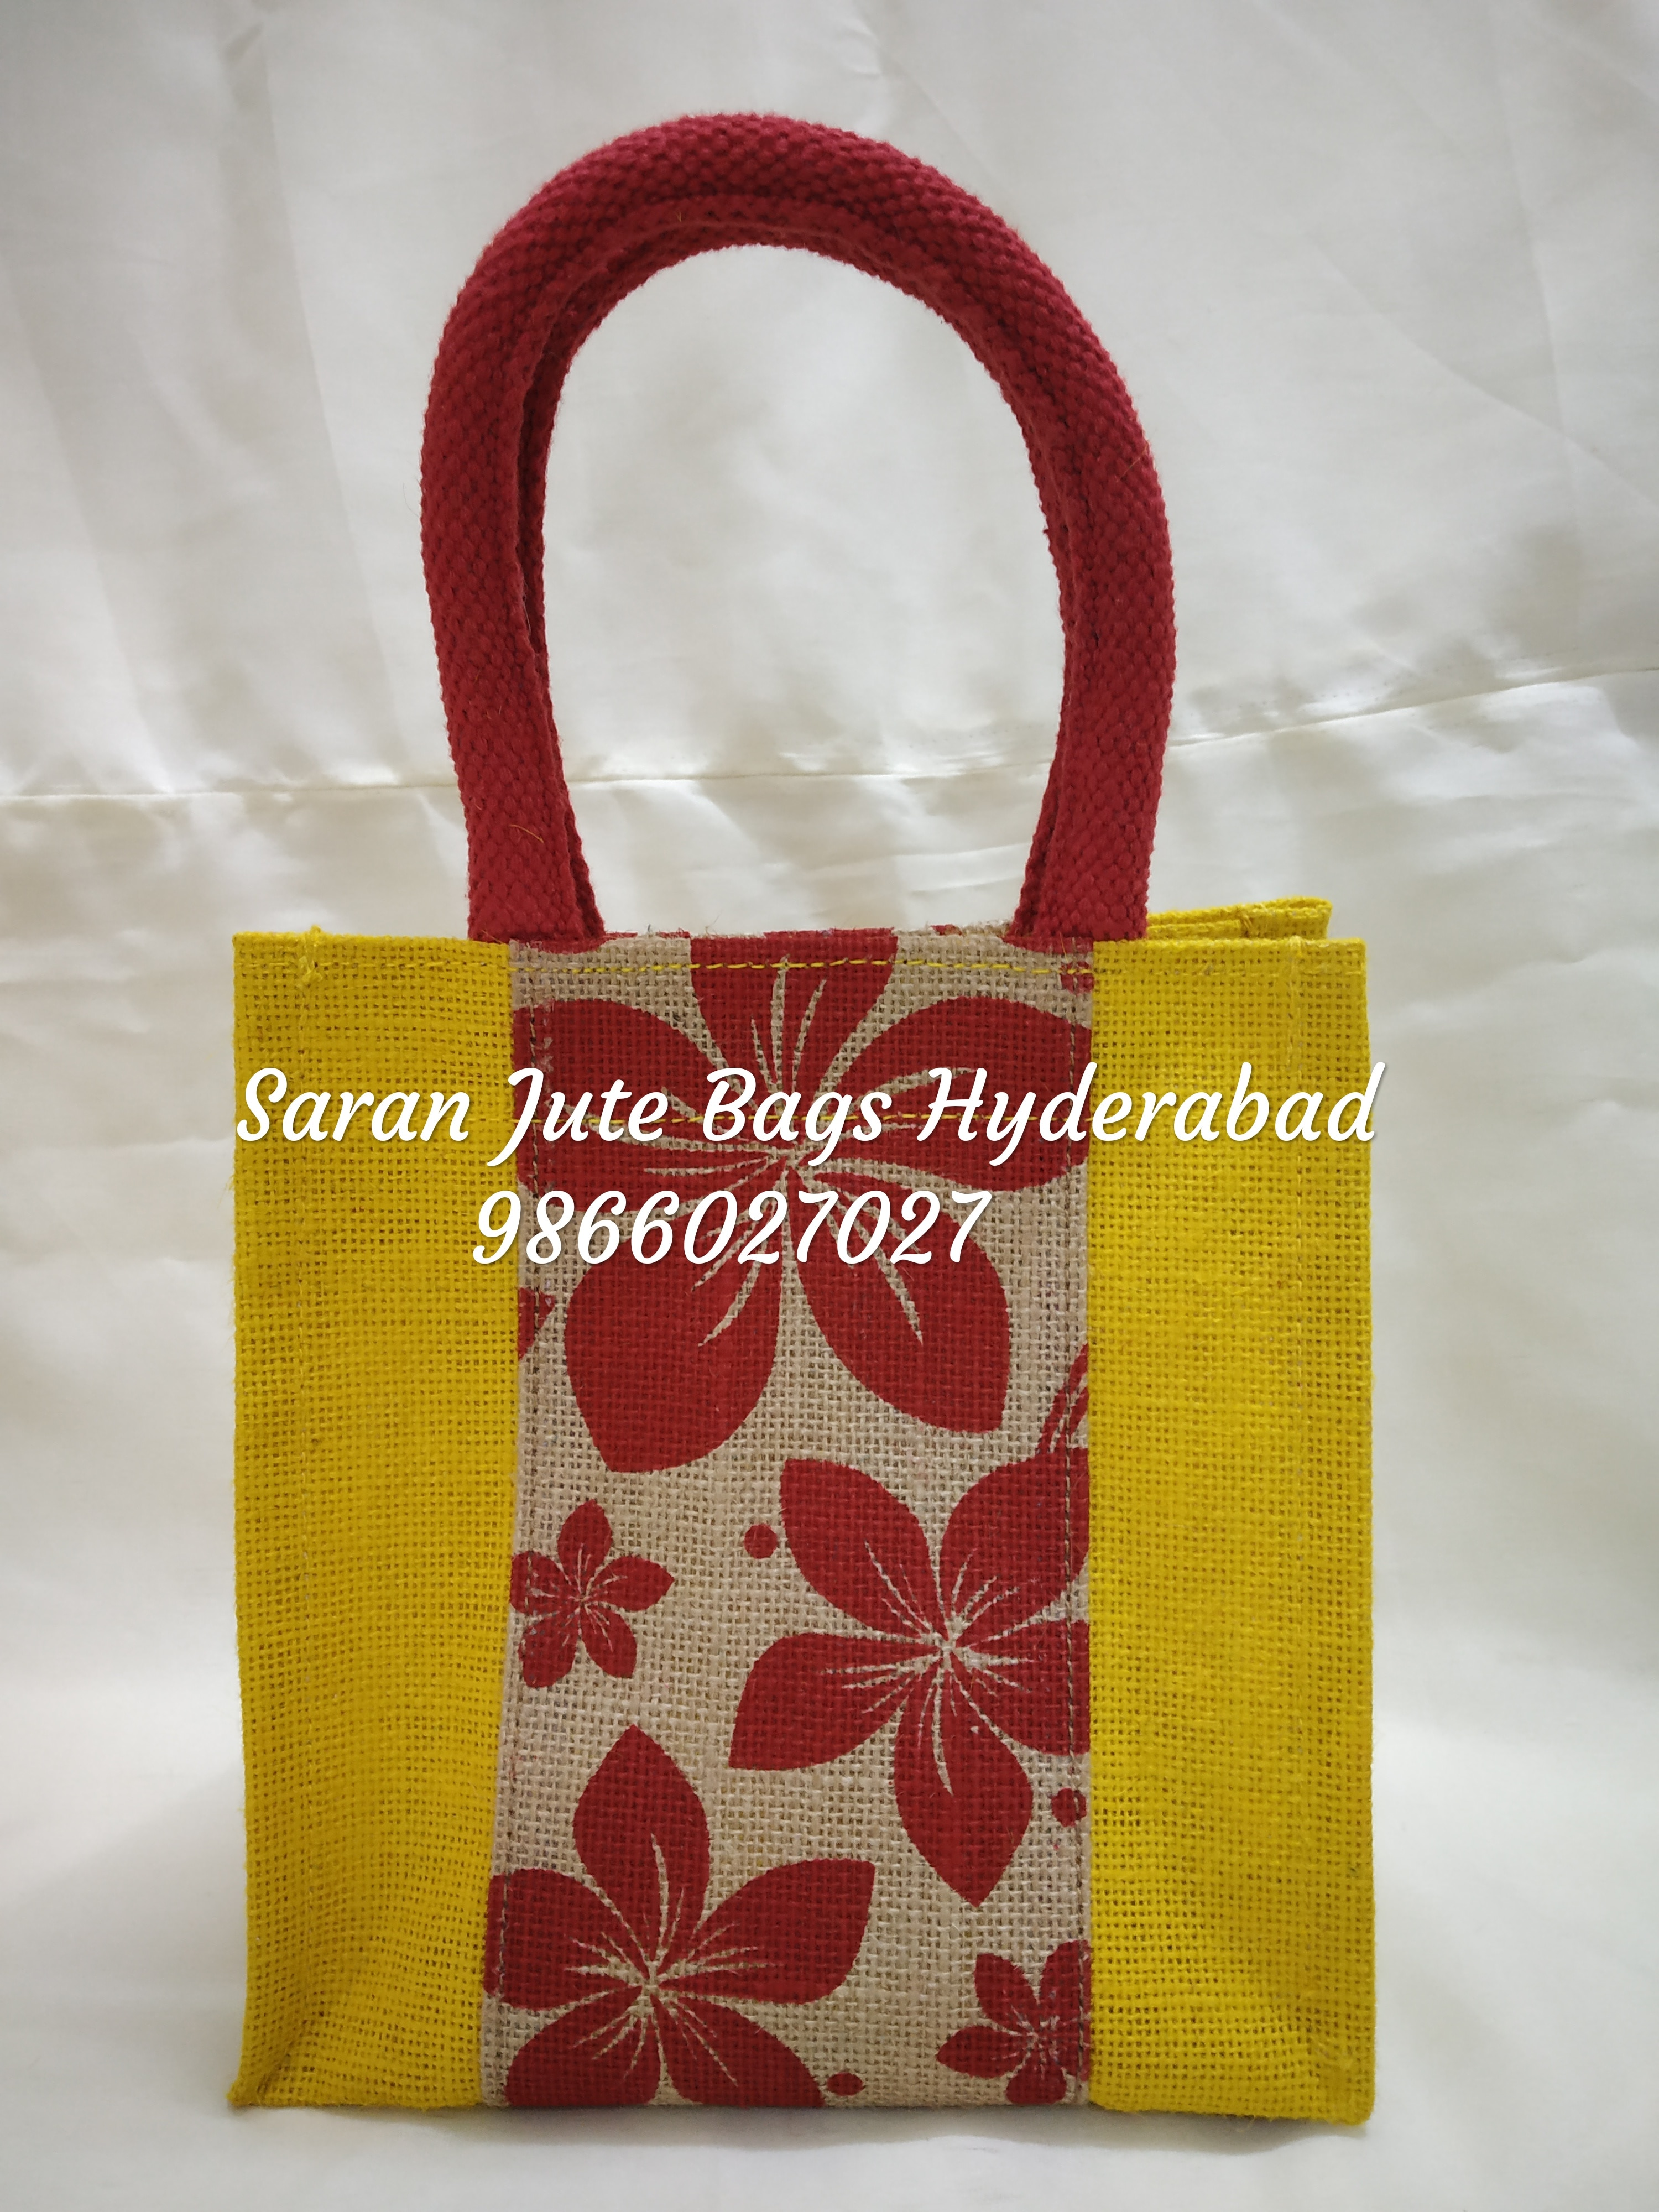 These bags can be used for lun